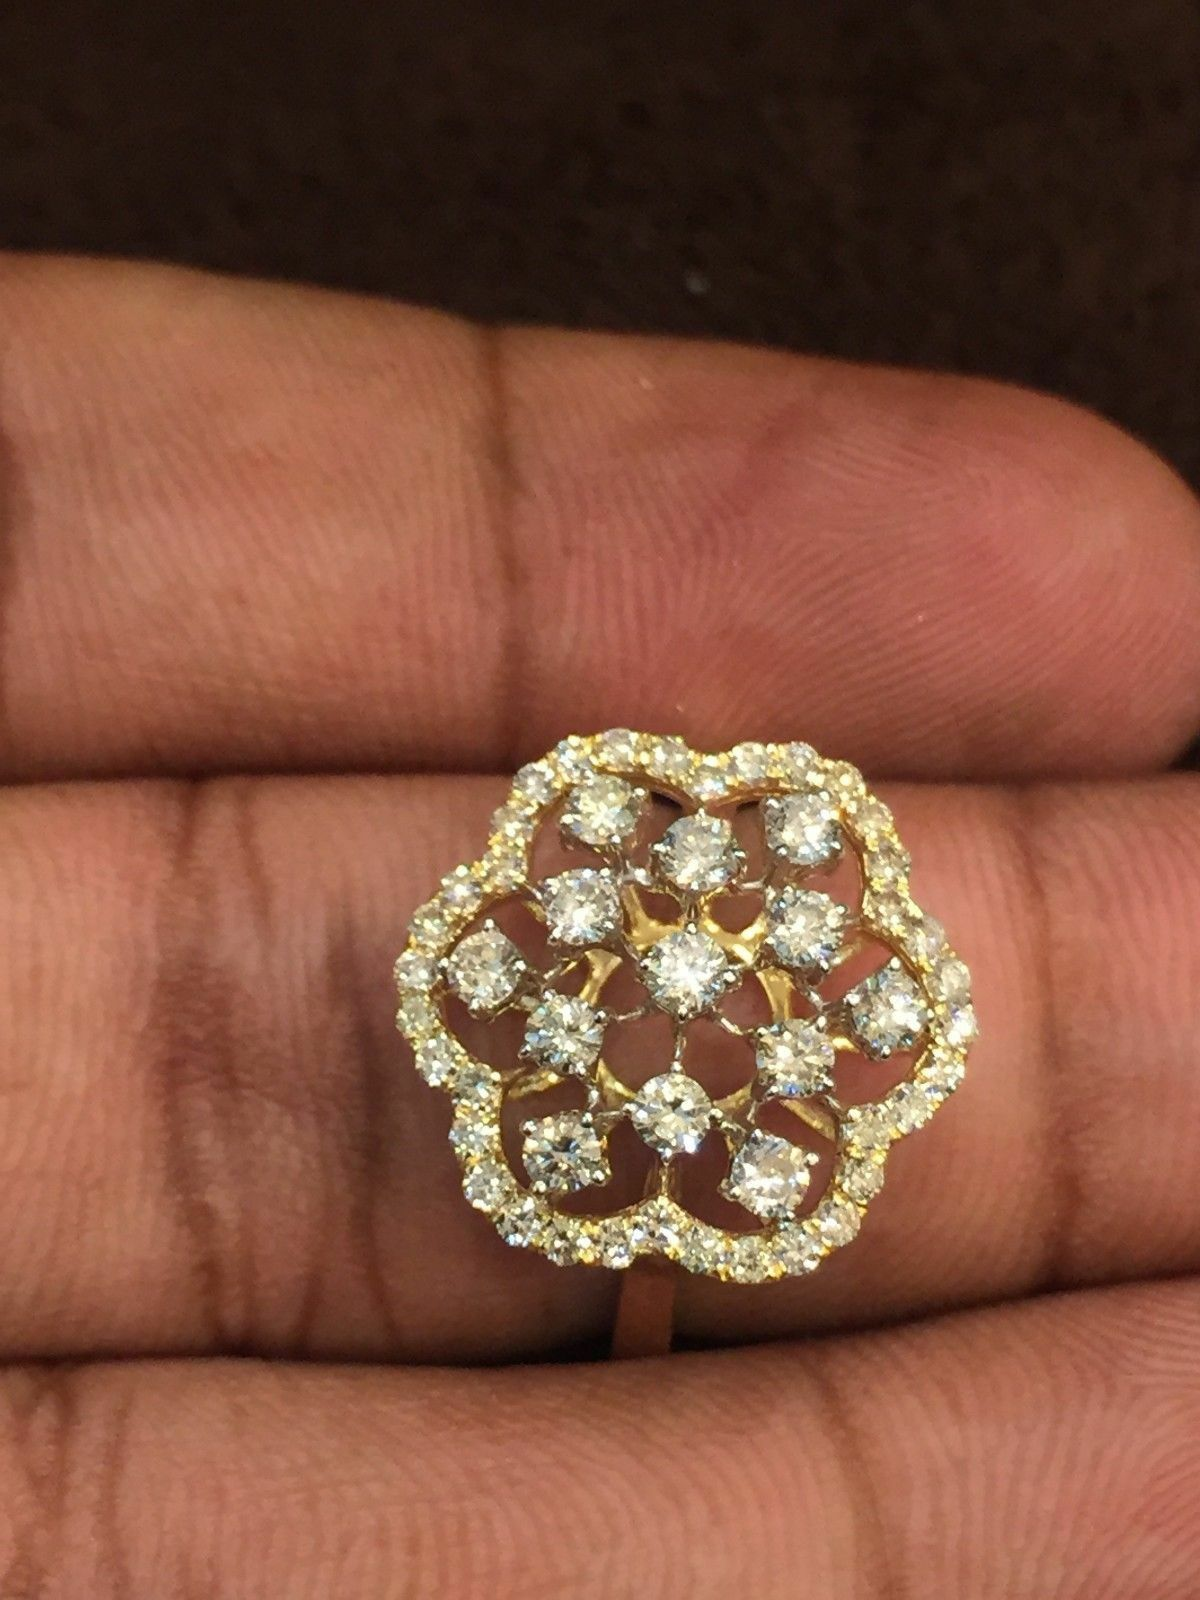 0.95 Cts Round Brilliant Cut Diamonds Engagement Ring In Solid Hallmark 14K gold